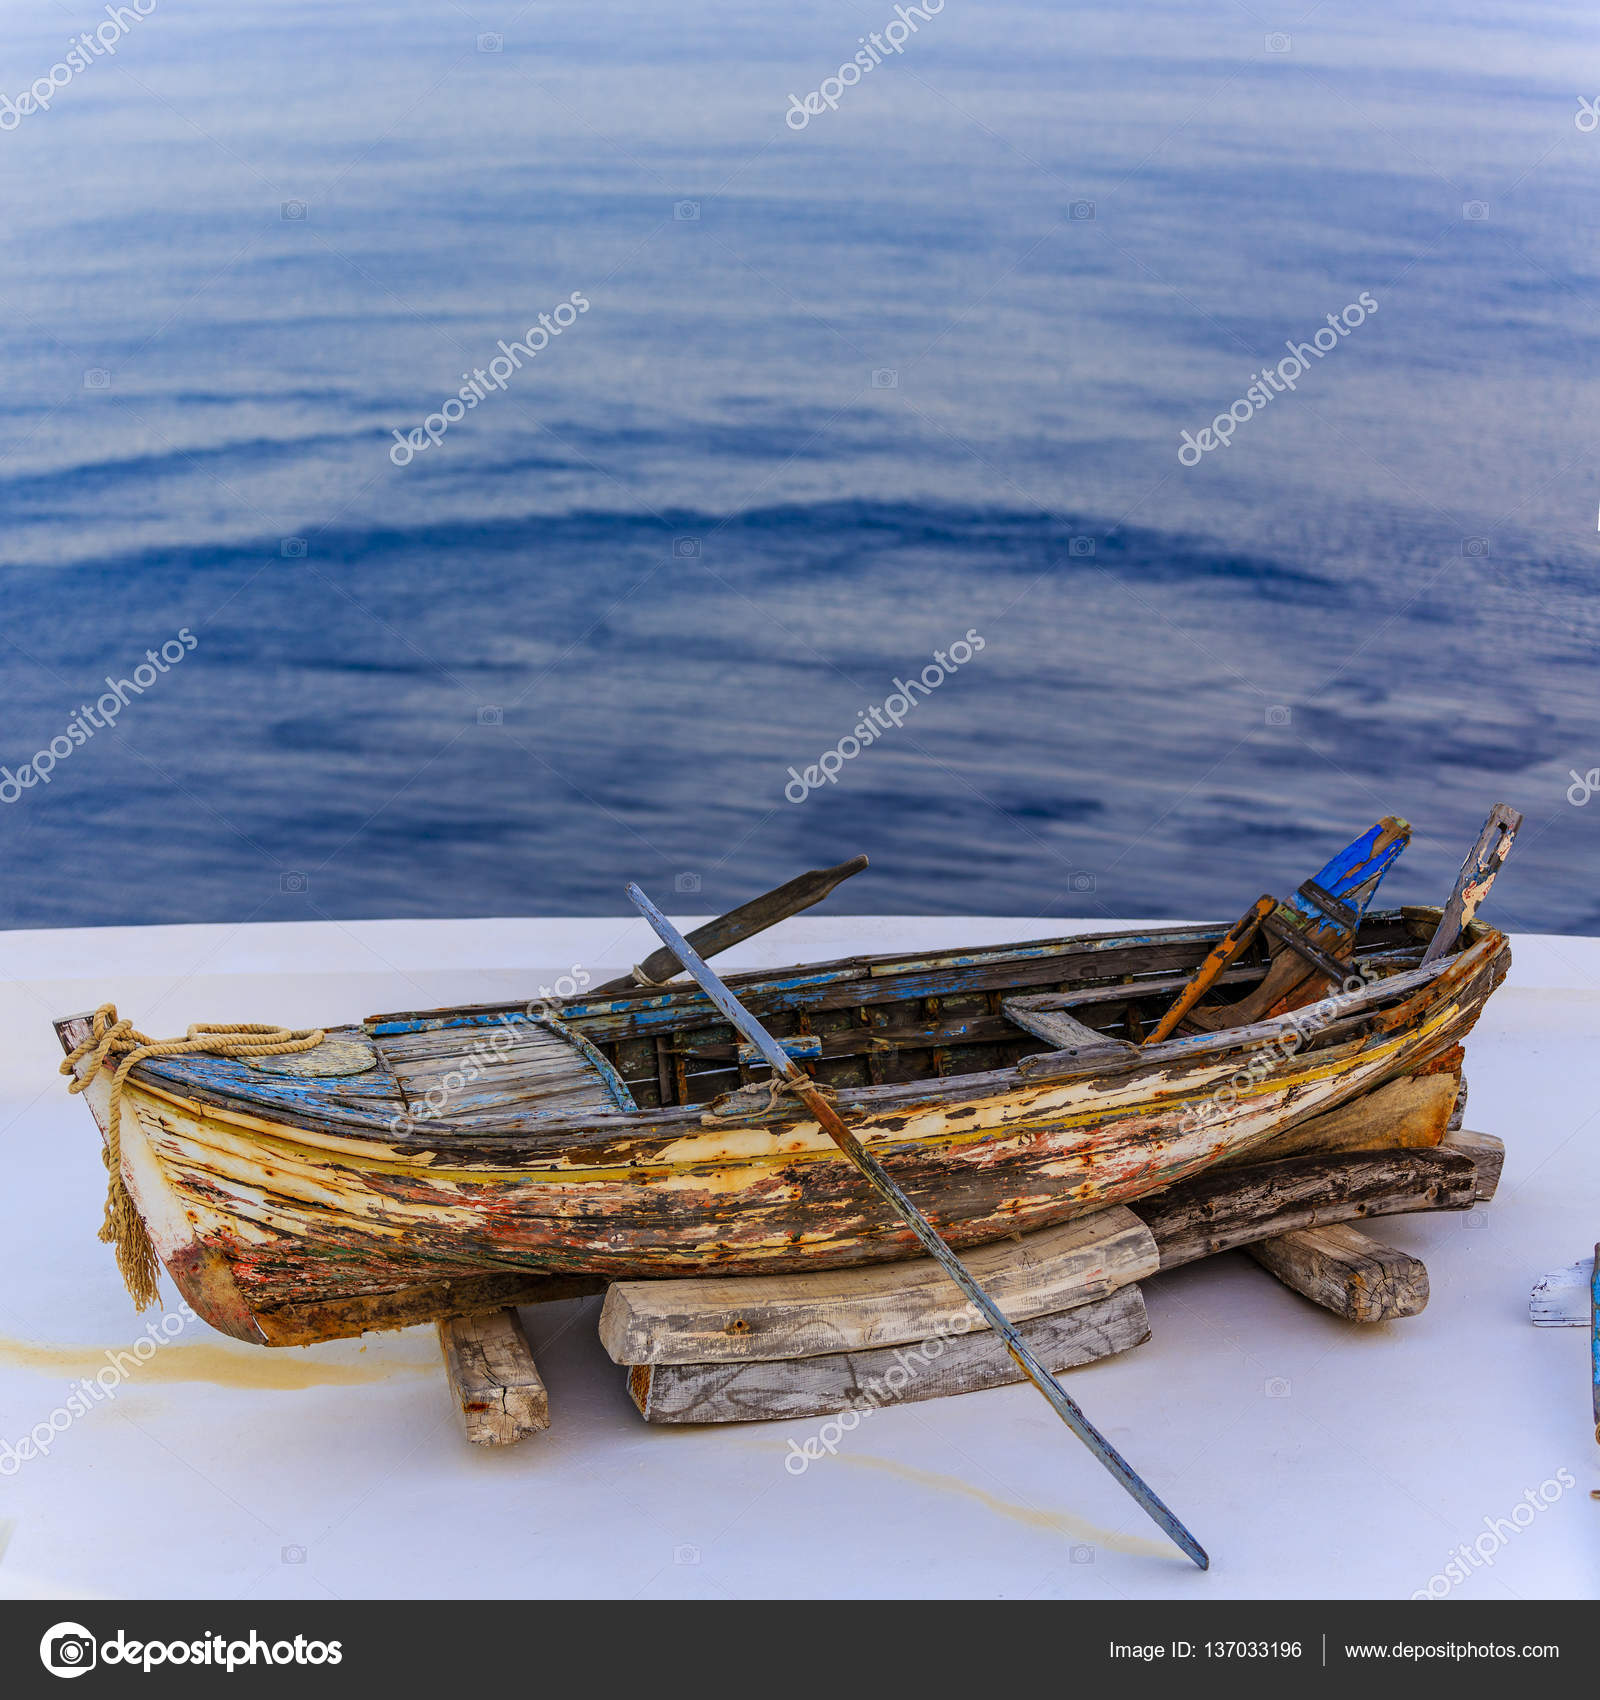 close up view of Old boat — Stock Photo © Gorilla #137033196